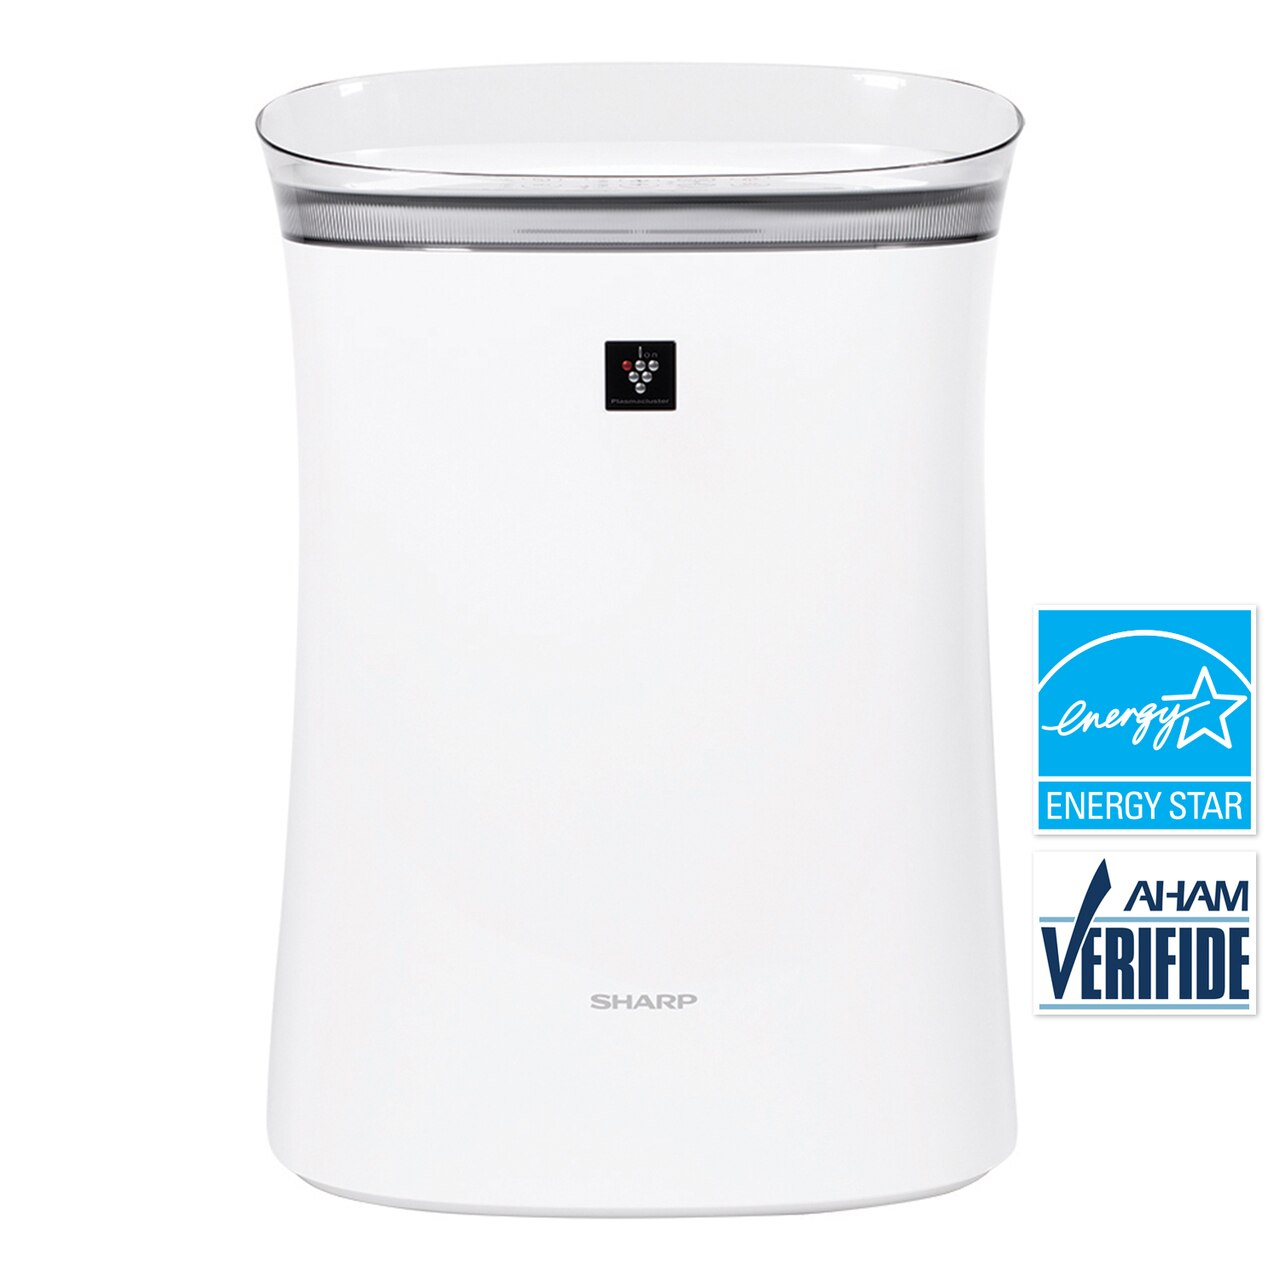 Sharp True HEPA Air Purifier with Plasmacluster® Ion Technology for Medium-Sized Rooms (FPK50UW)